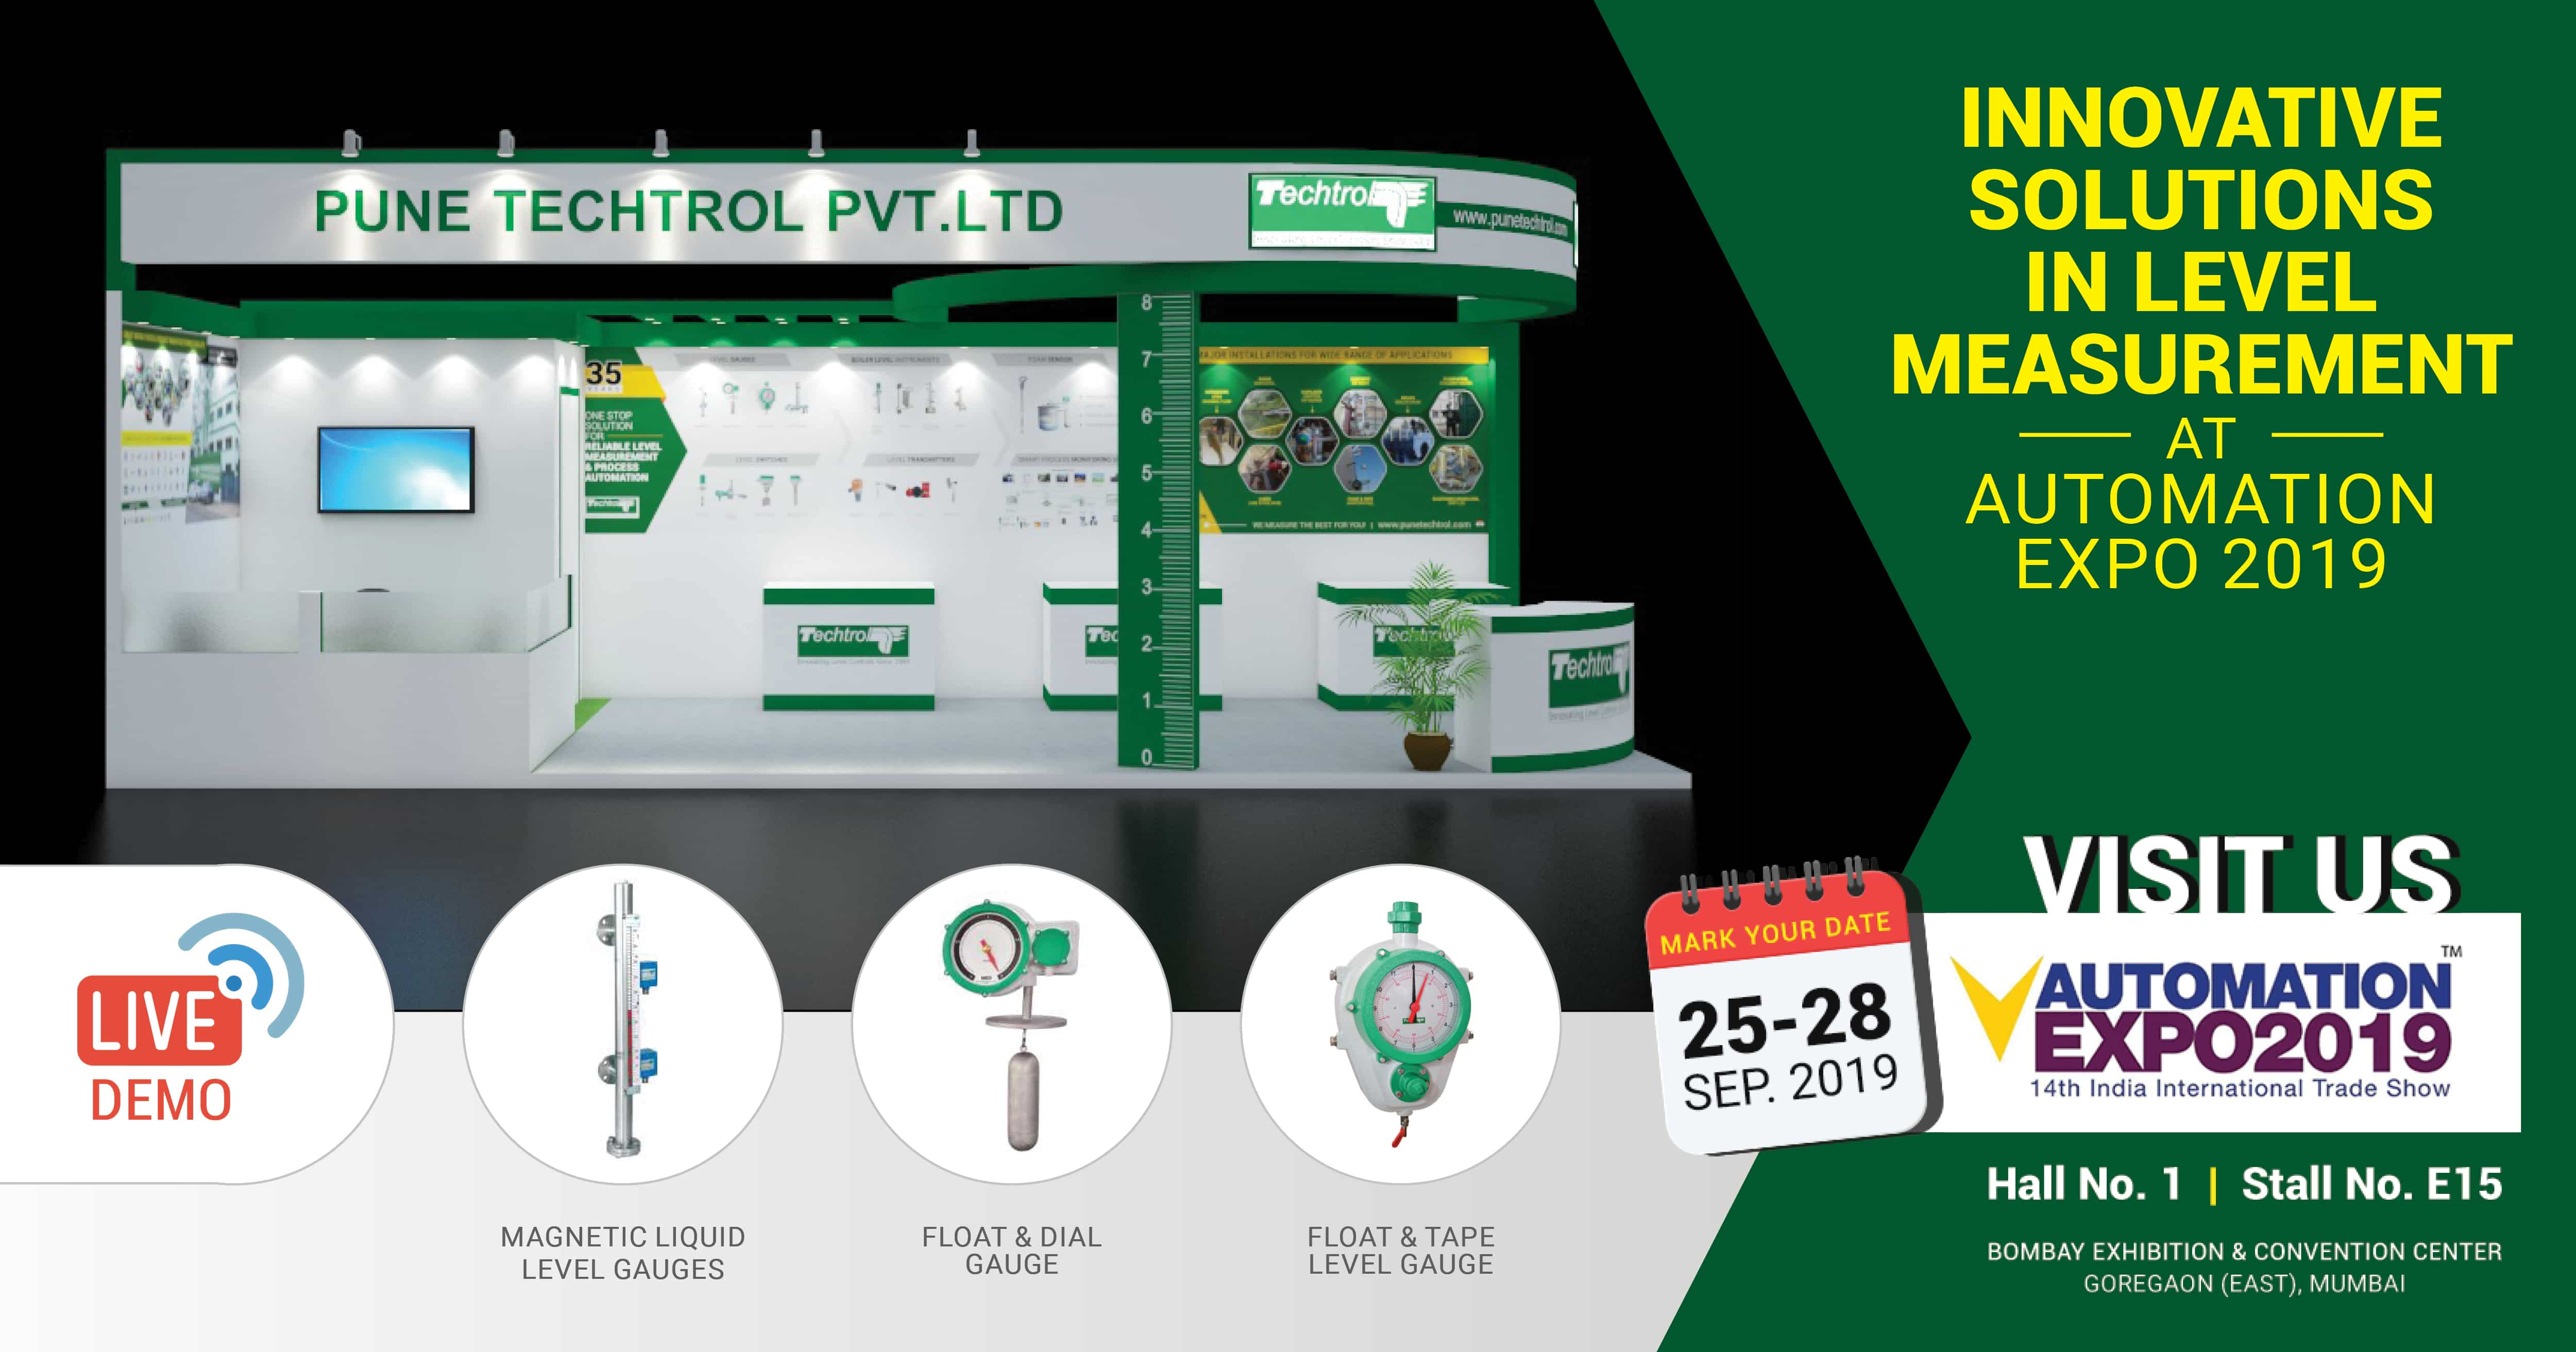 Pune Techtrol Brings Future of Level Measurement and Process Automation Automation India Expo 2019